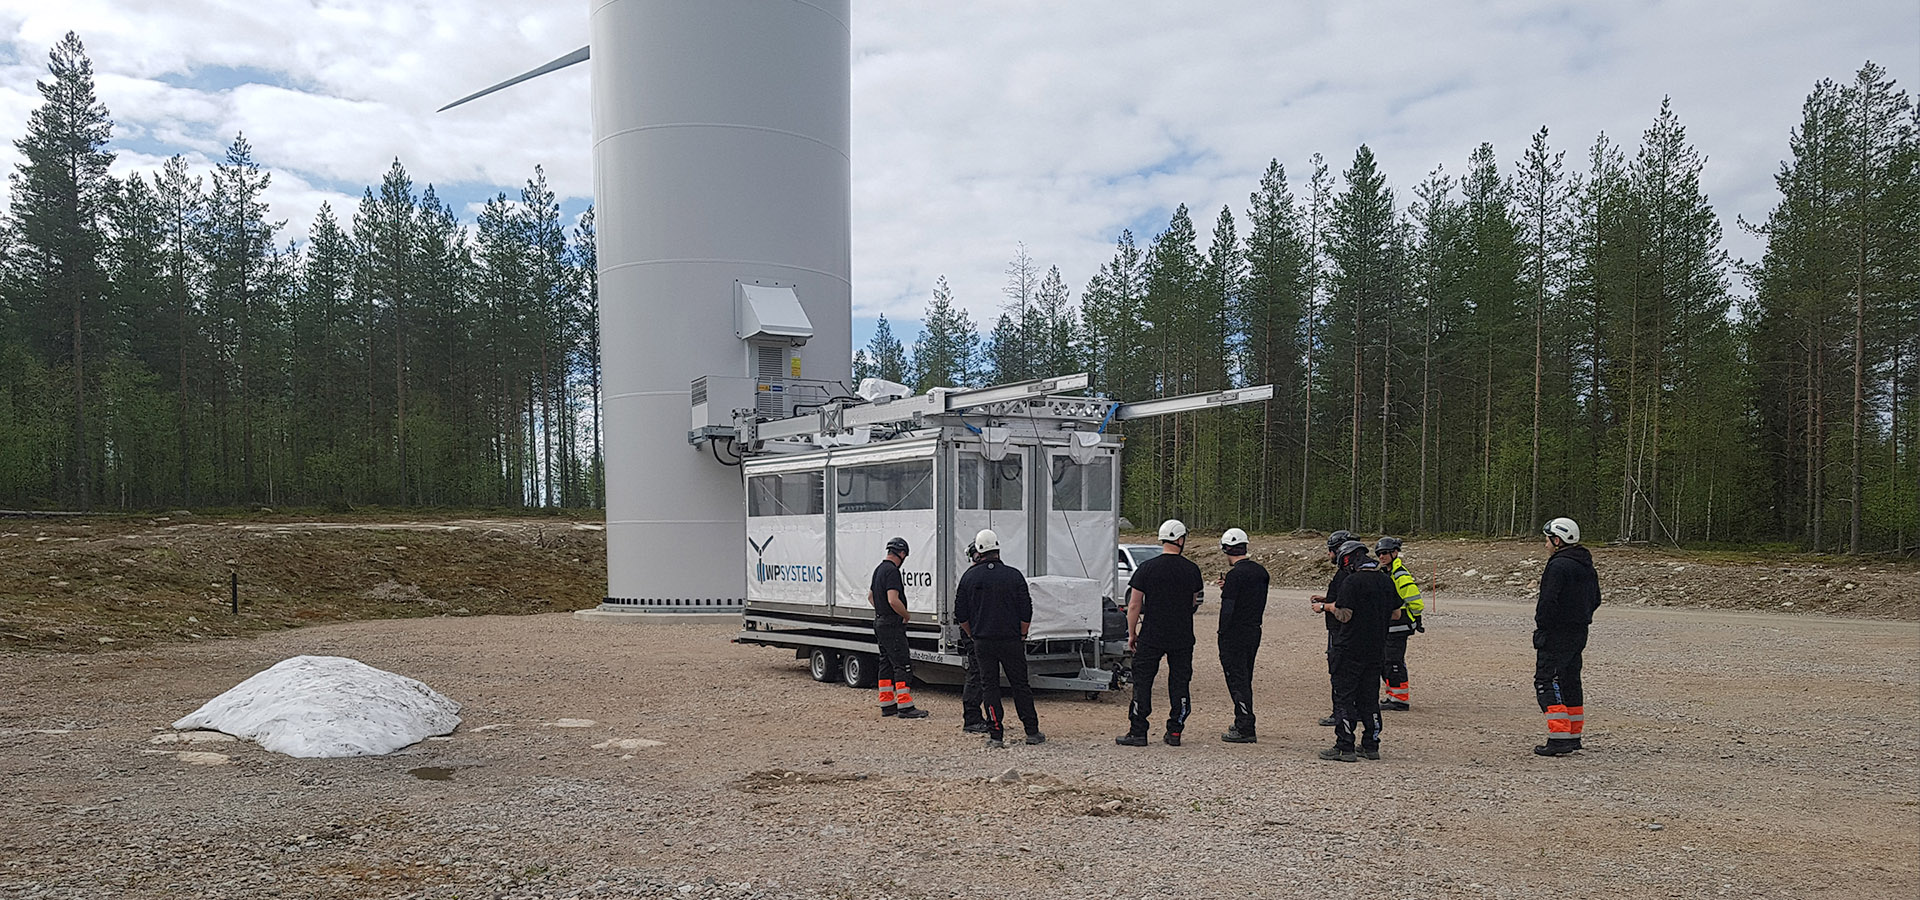 Rotor blade access system terra 1.1 - training must be completed before using the new system.